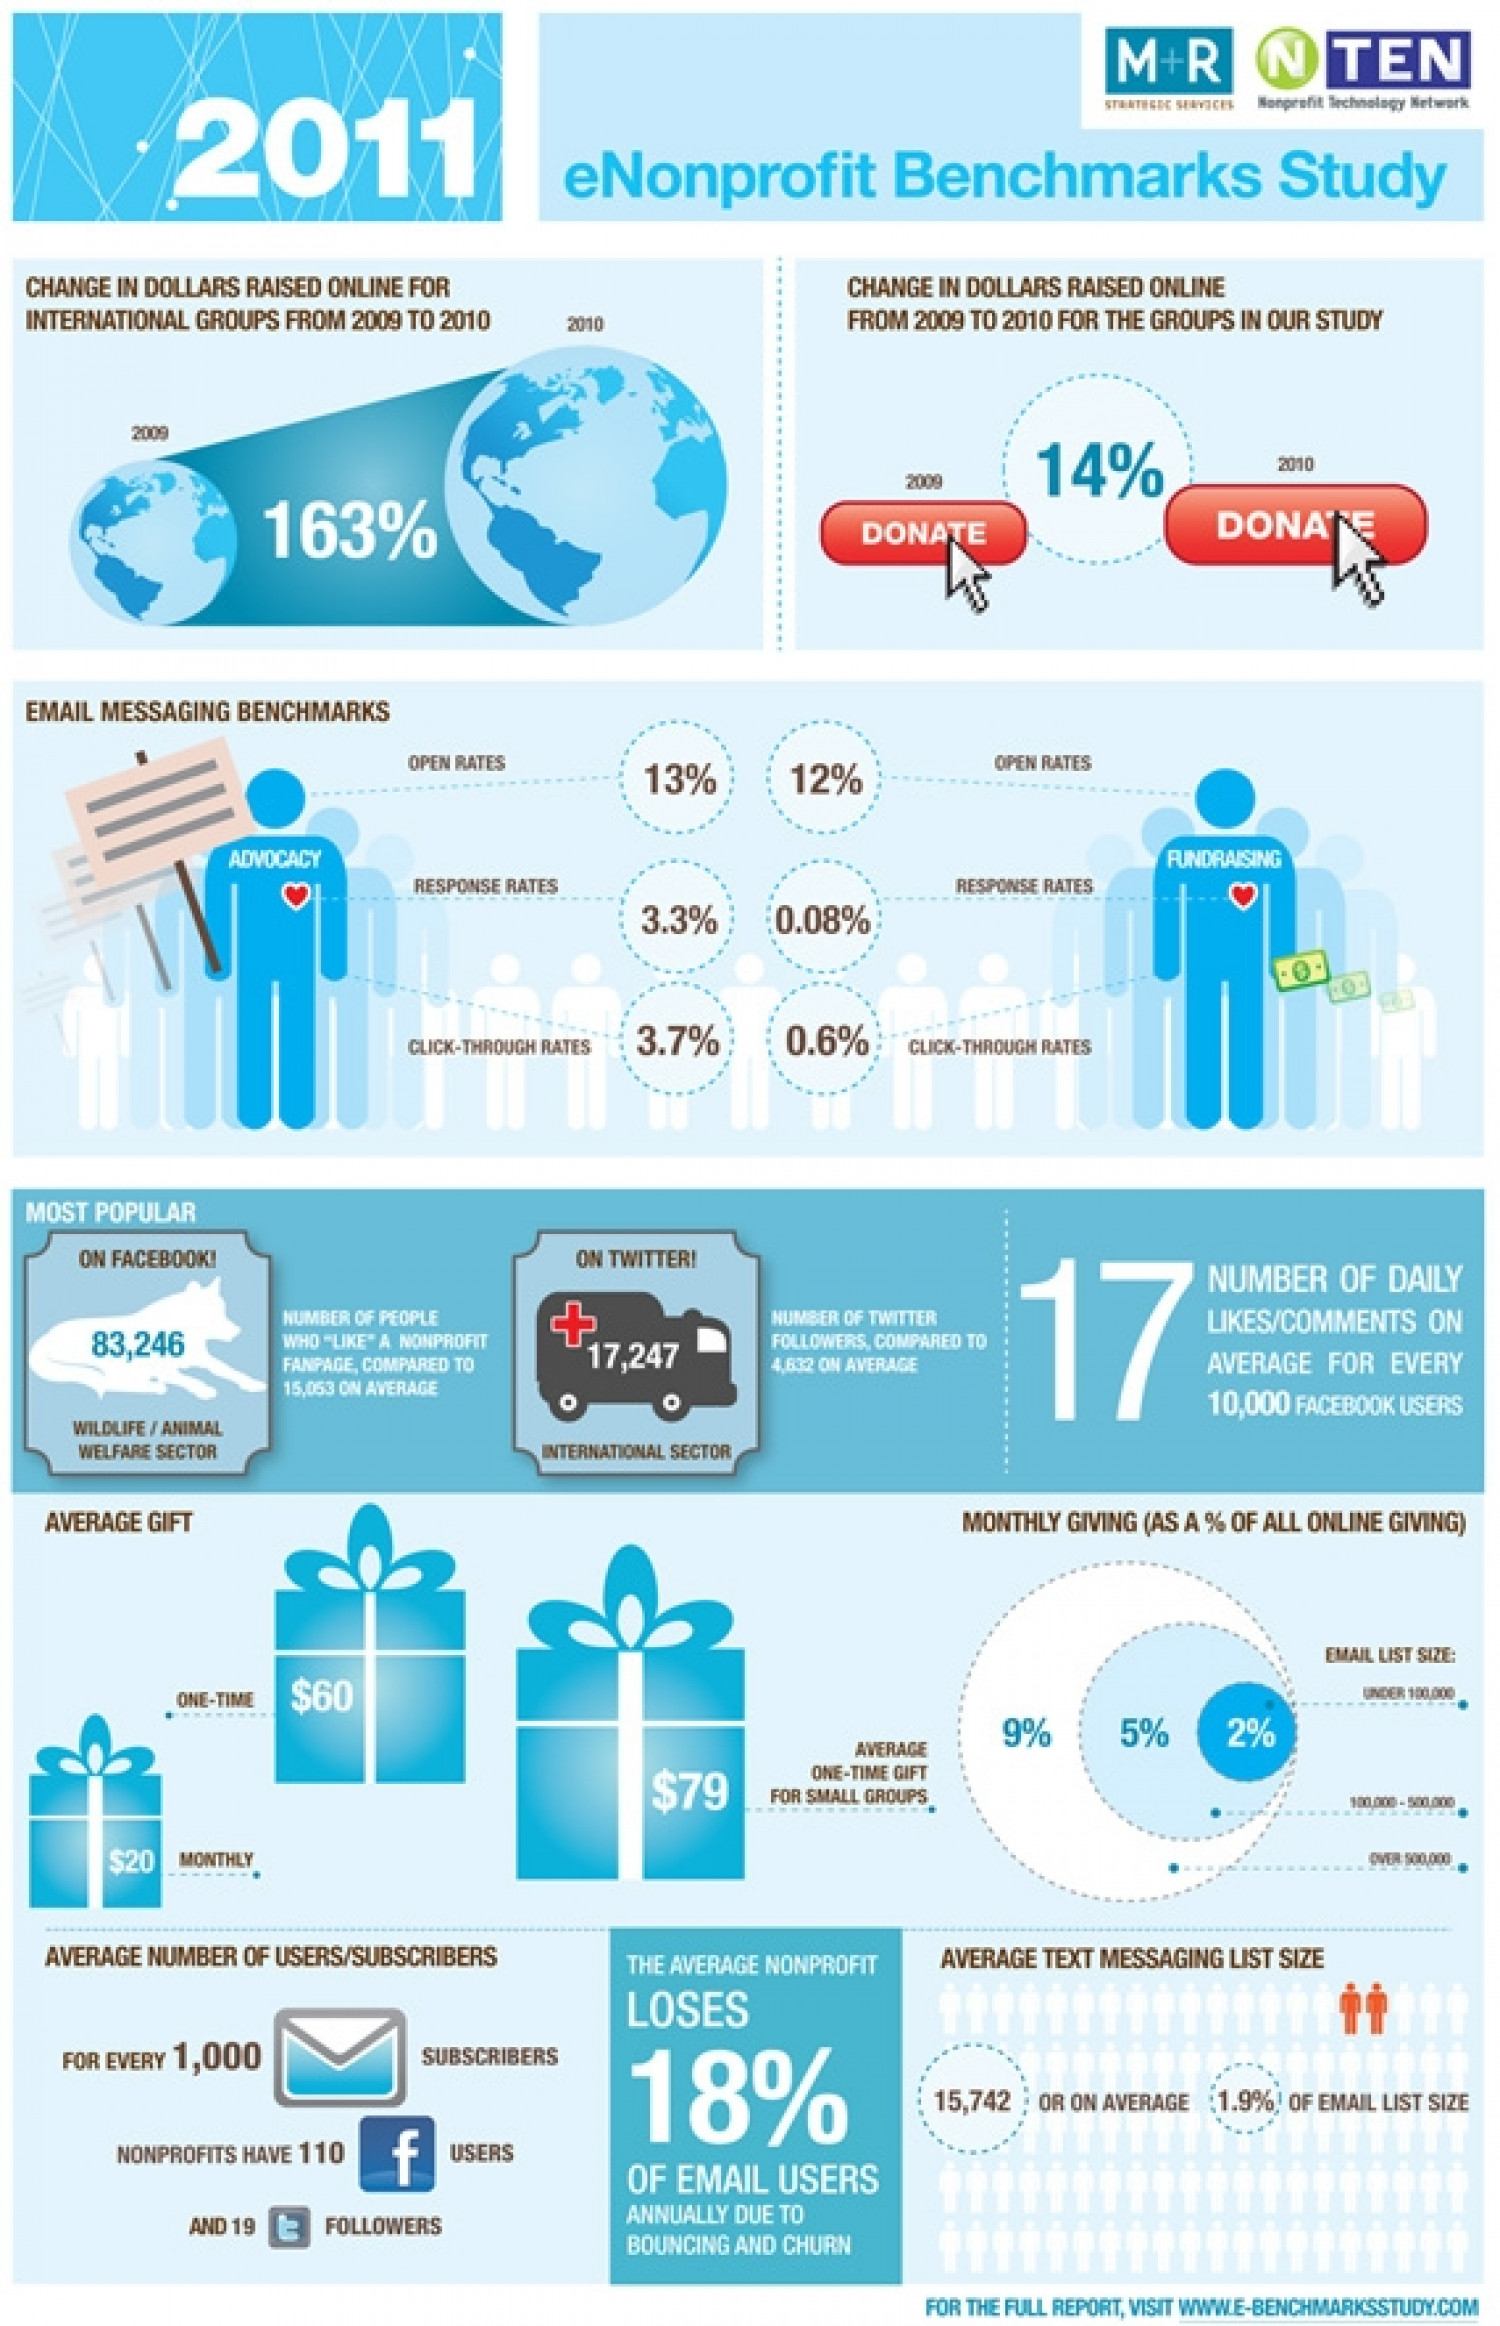 2011 eNonprofit Benchmarks Study Infographic